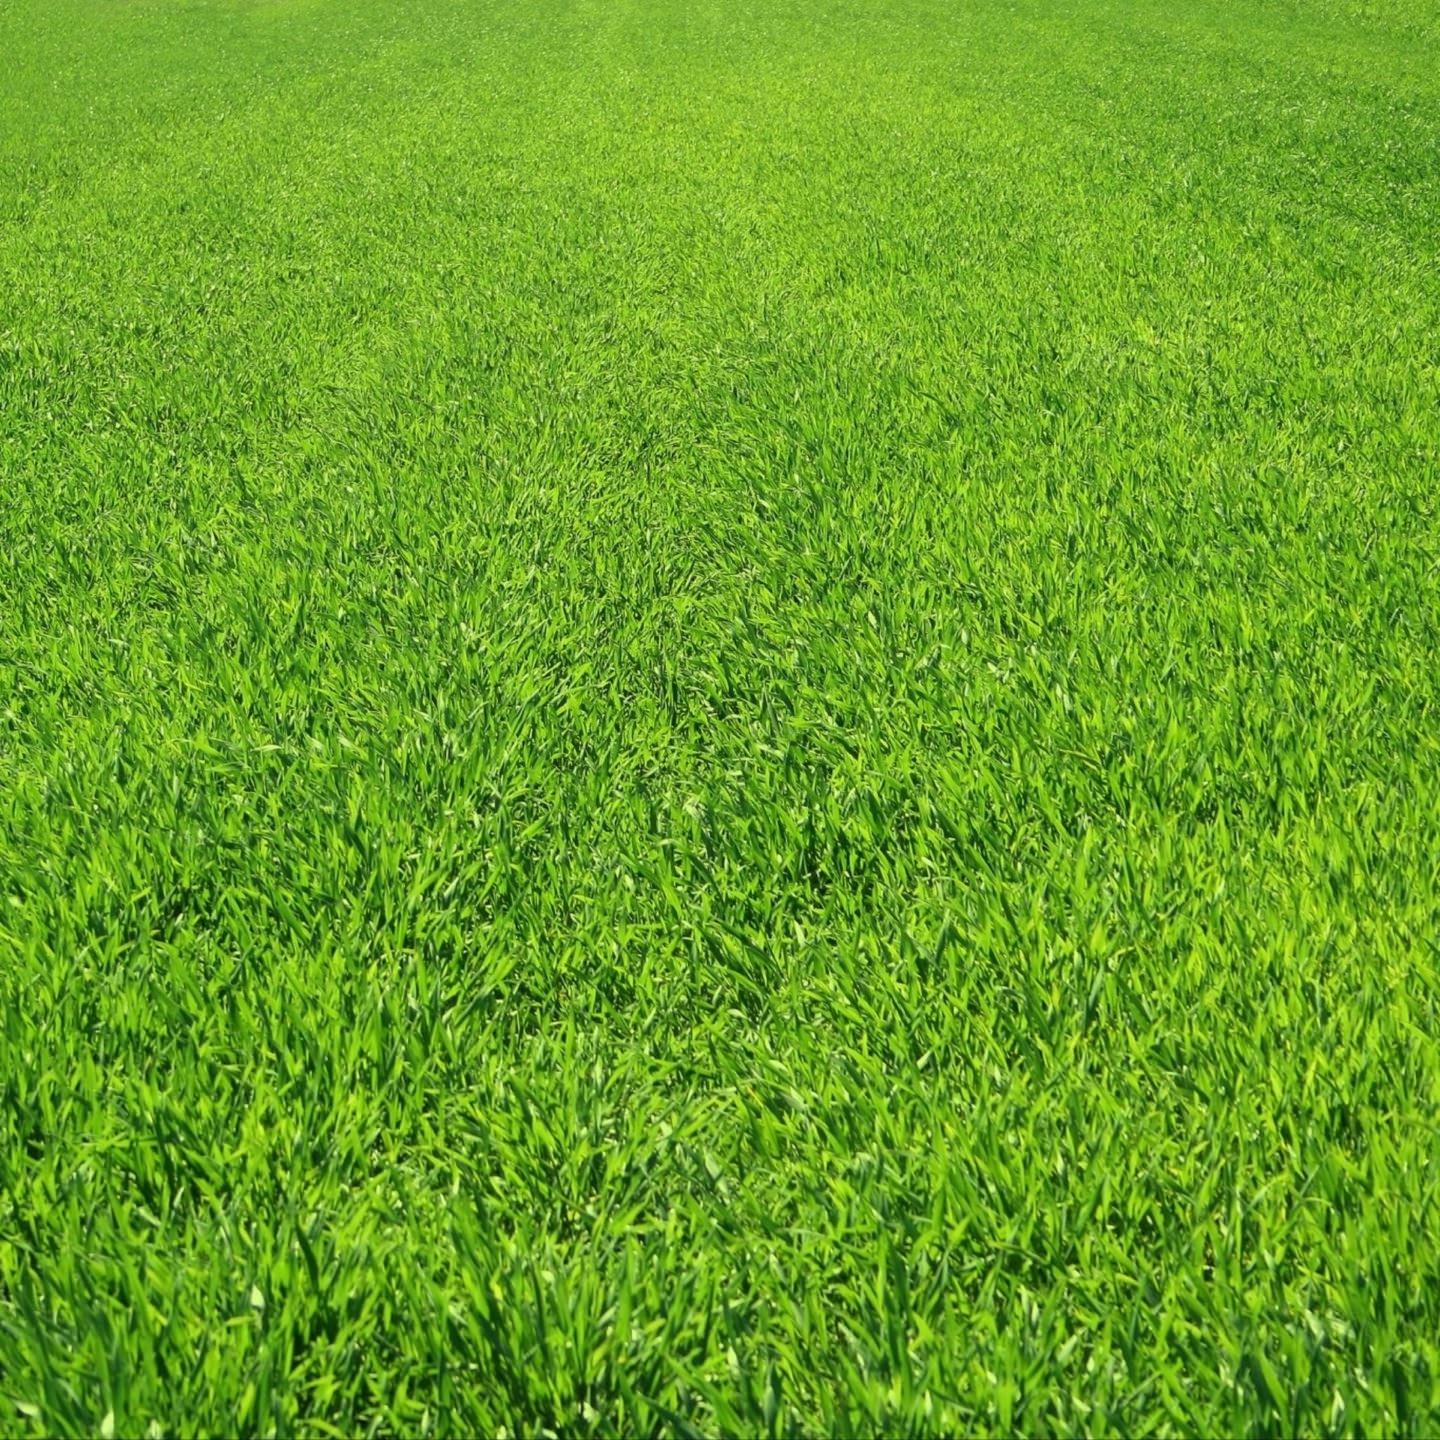 android smart phone wallpaper green grass 1440x1440 download hd wallpaper wallpapertip android smart phone wallpaper green